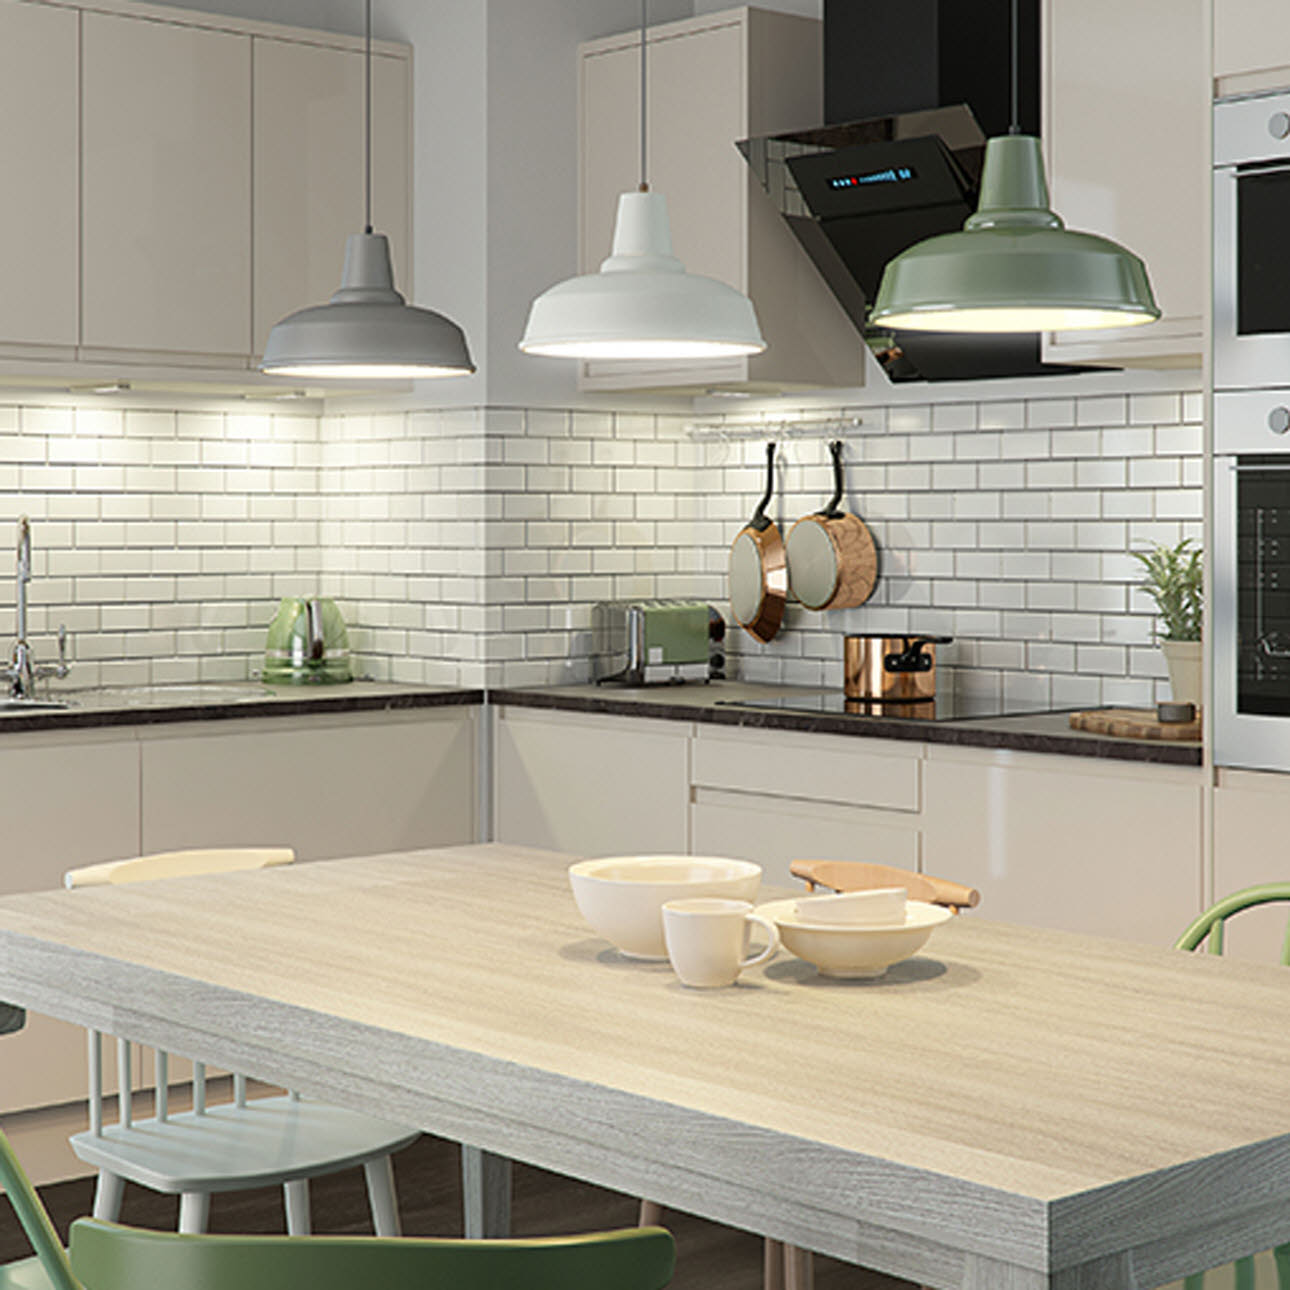 Luna Cream gloss handleless kitchen